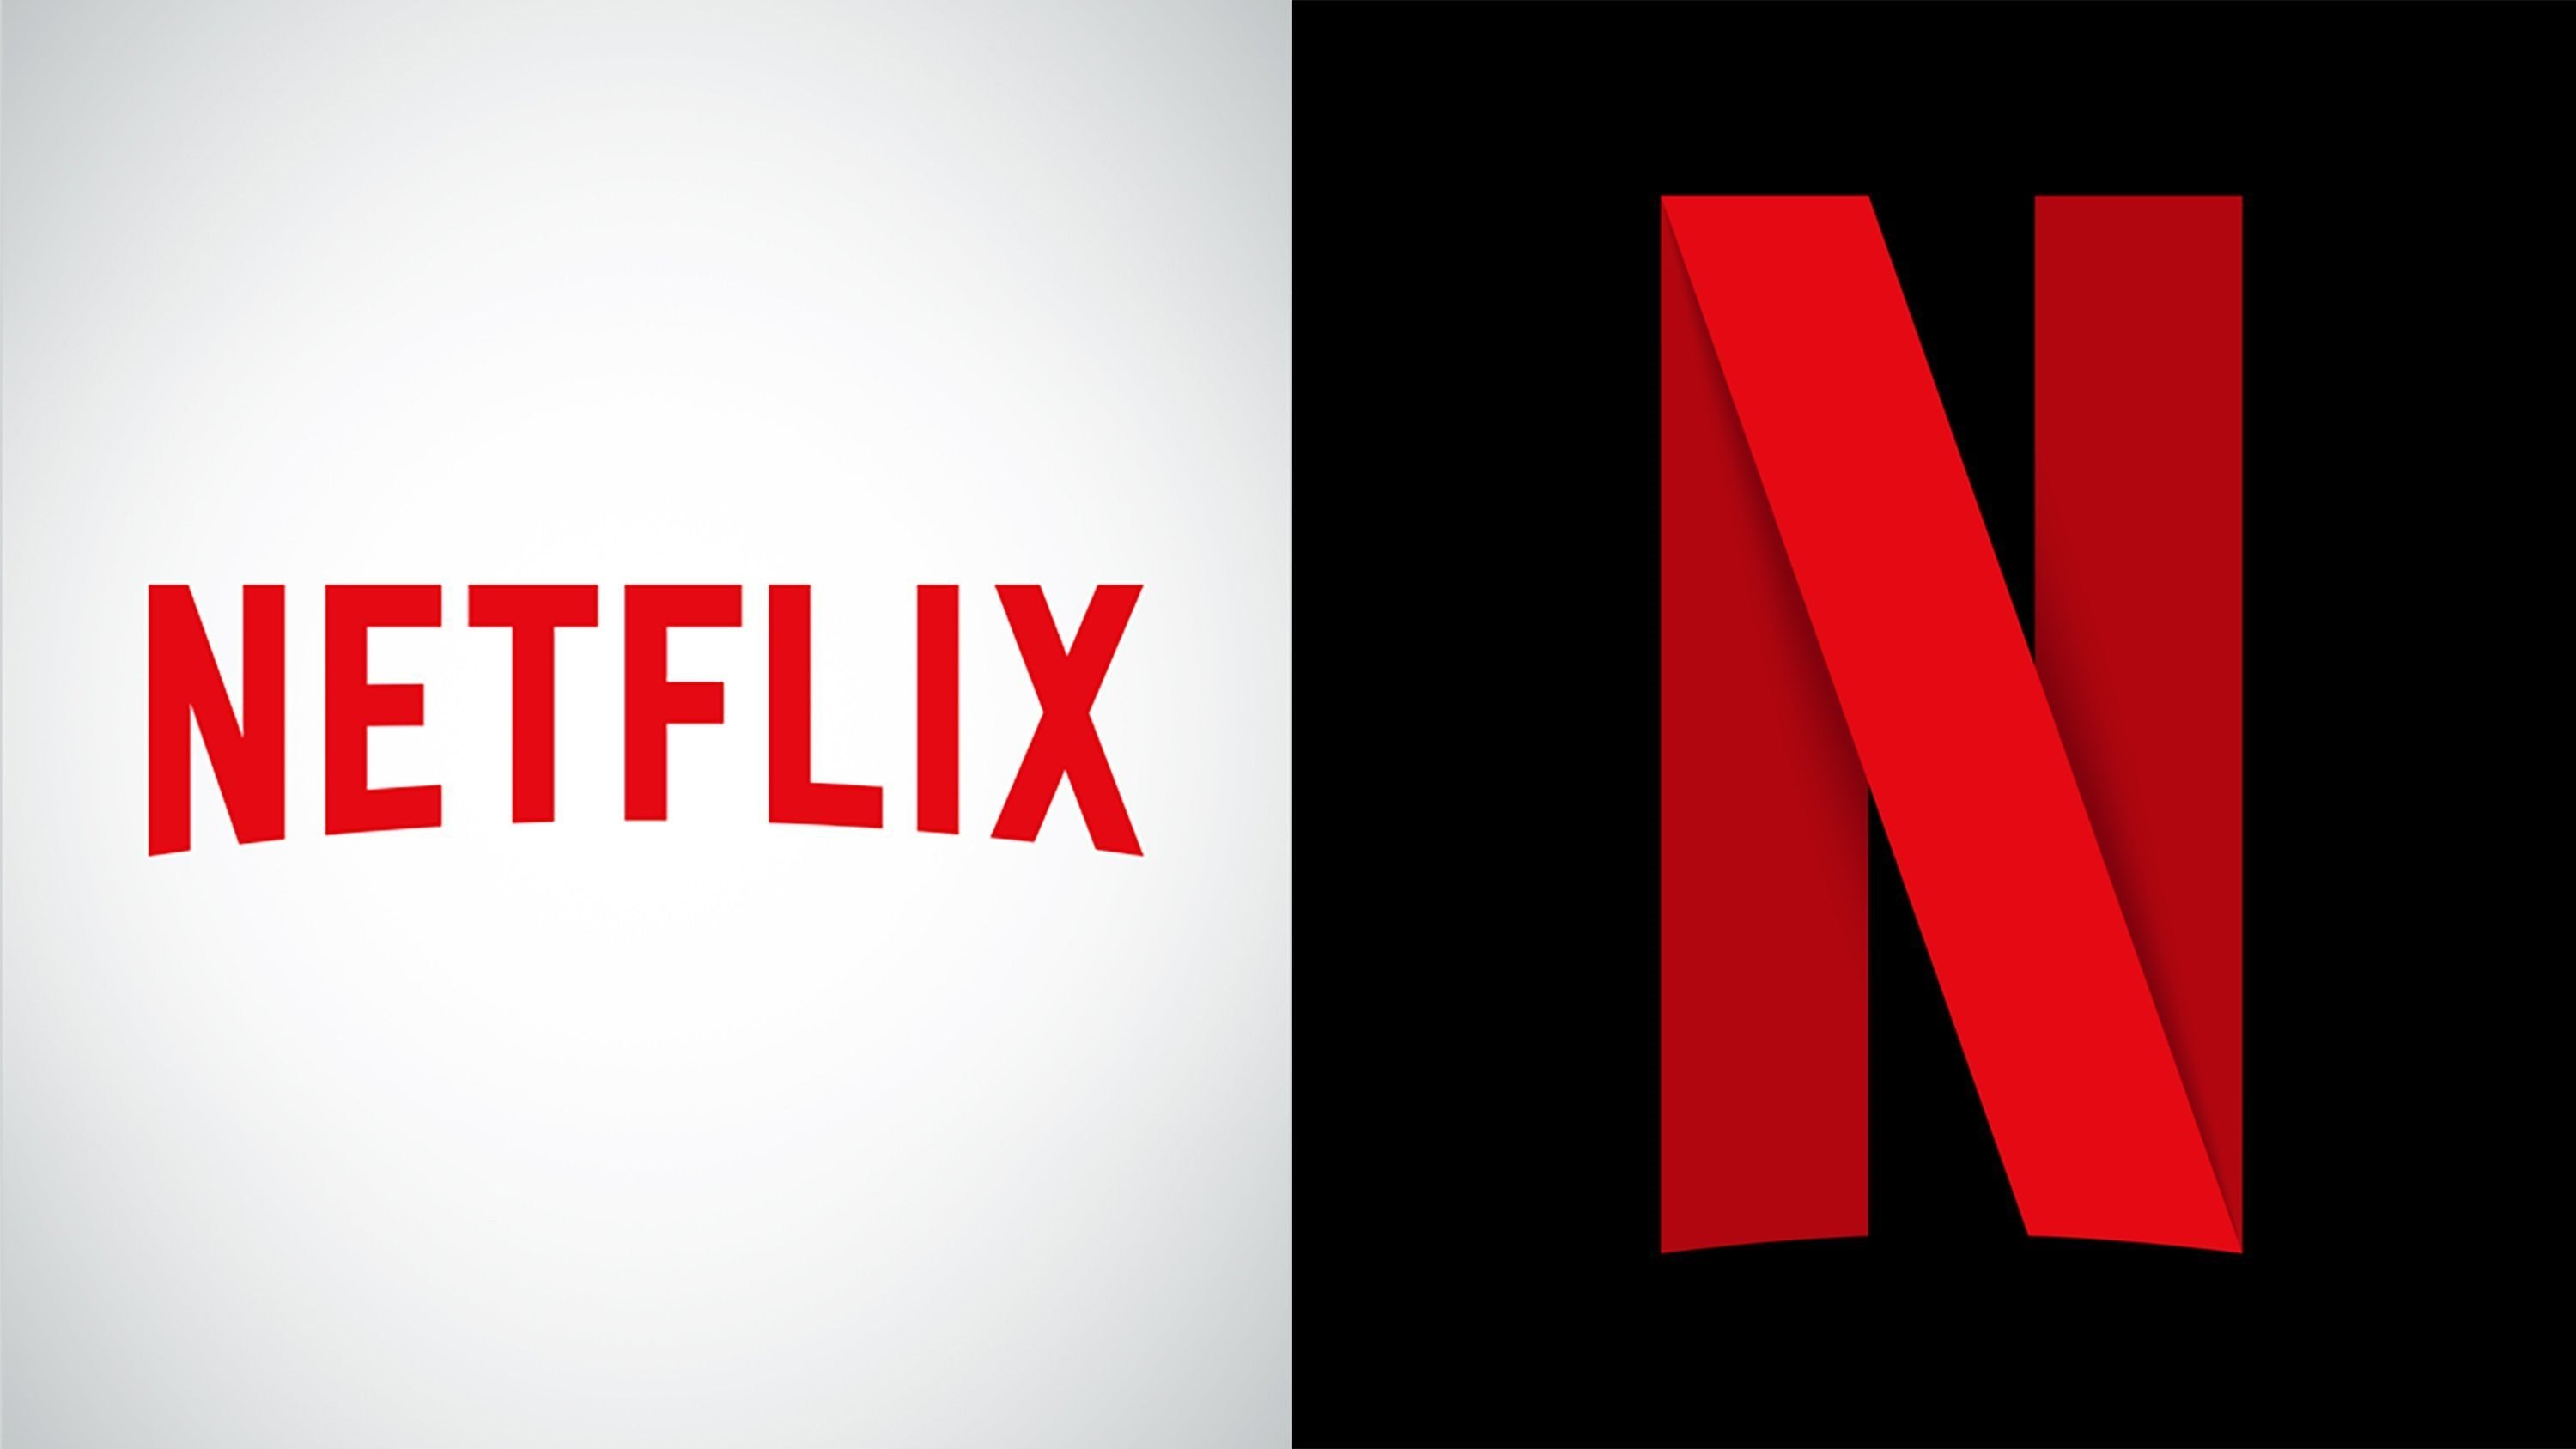 Netflix testing 'skip intro' feature that cuts off opening credits